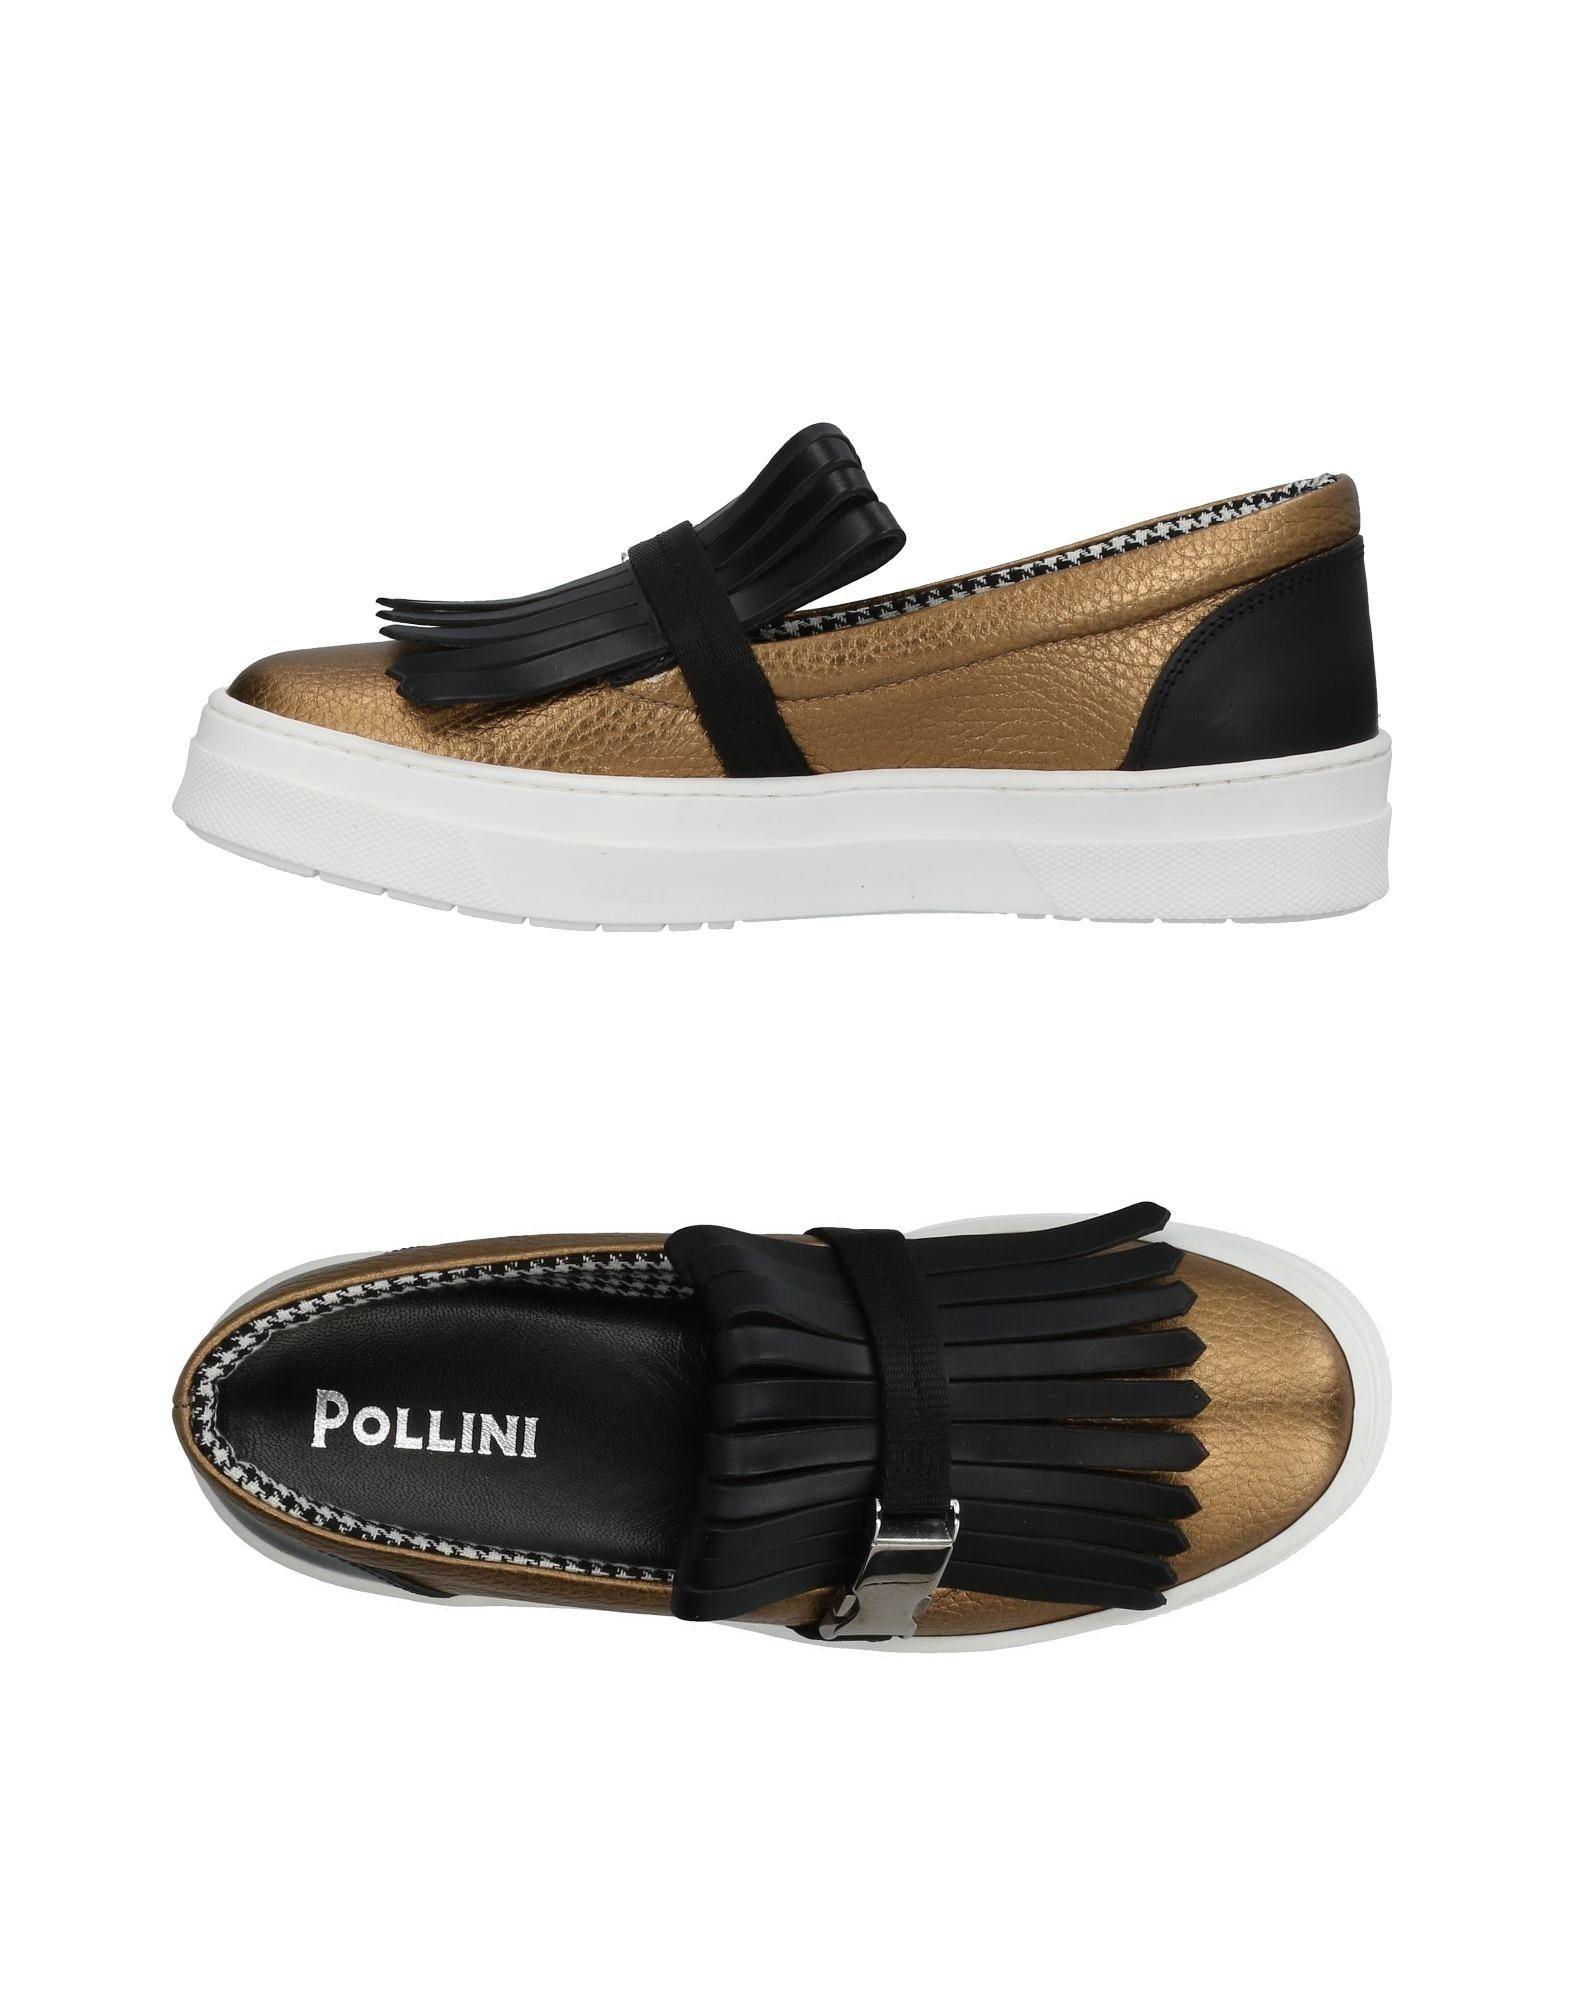 Pollini Sneakers In Gold